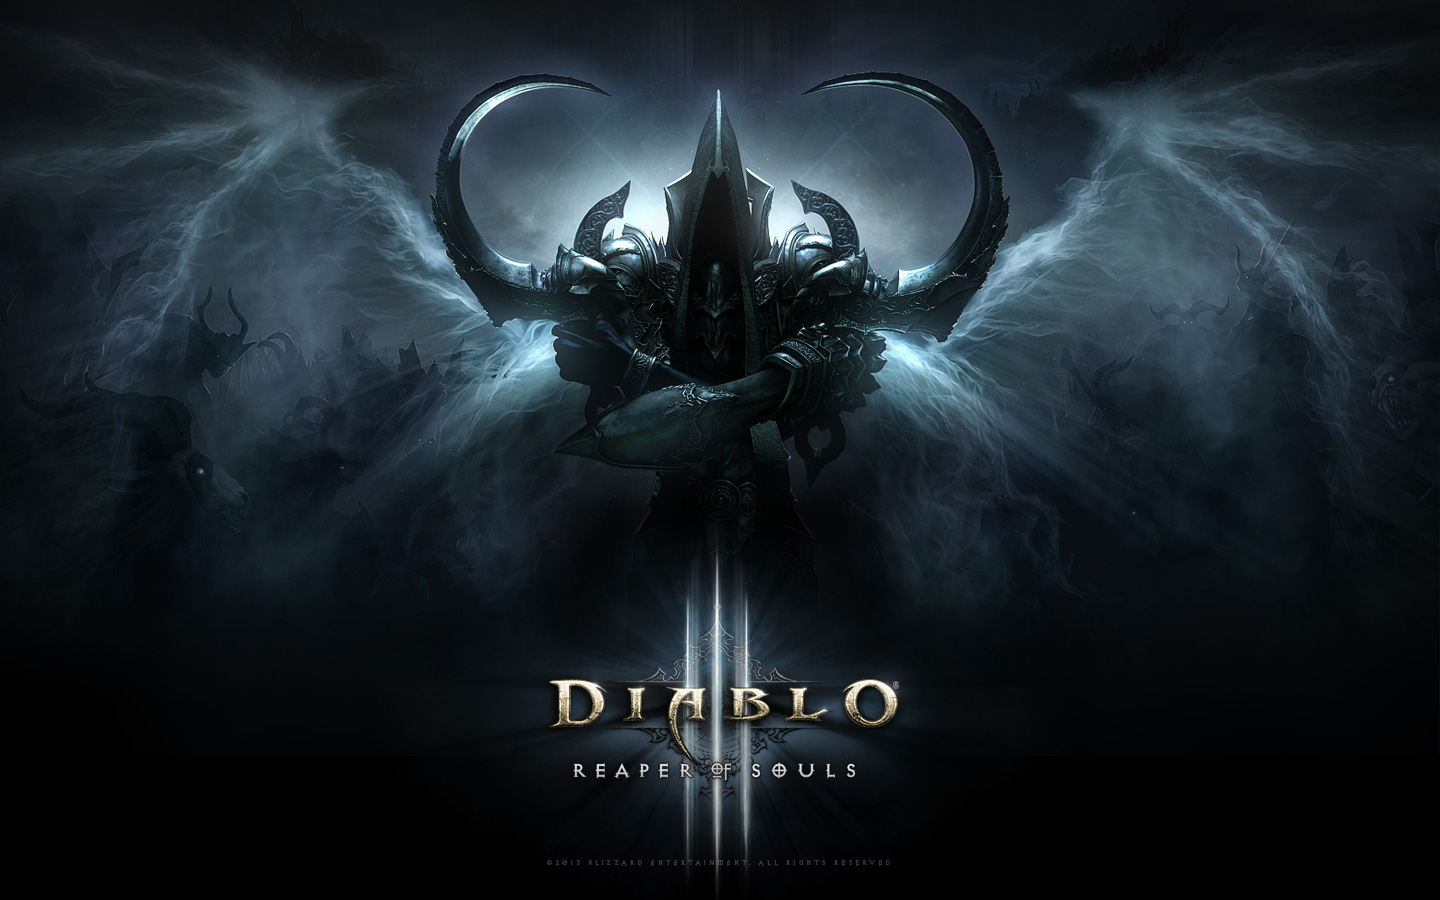 Diablo  Gallery of Wallpapers  Free Download For Android 1440x900